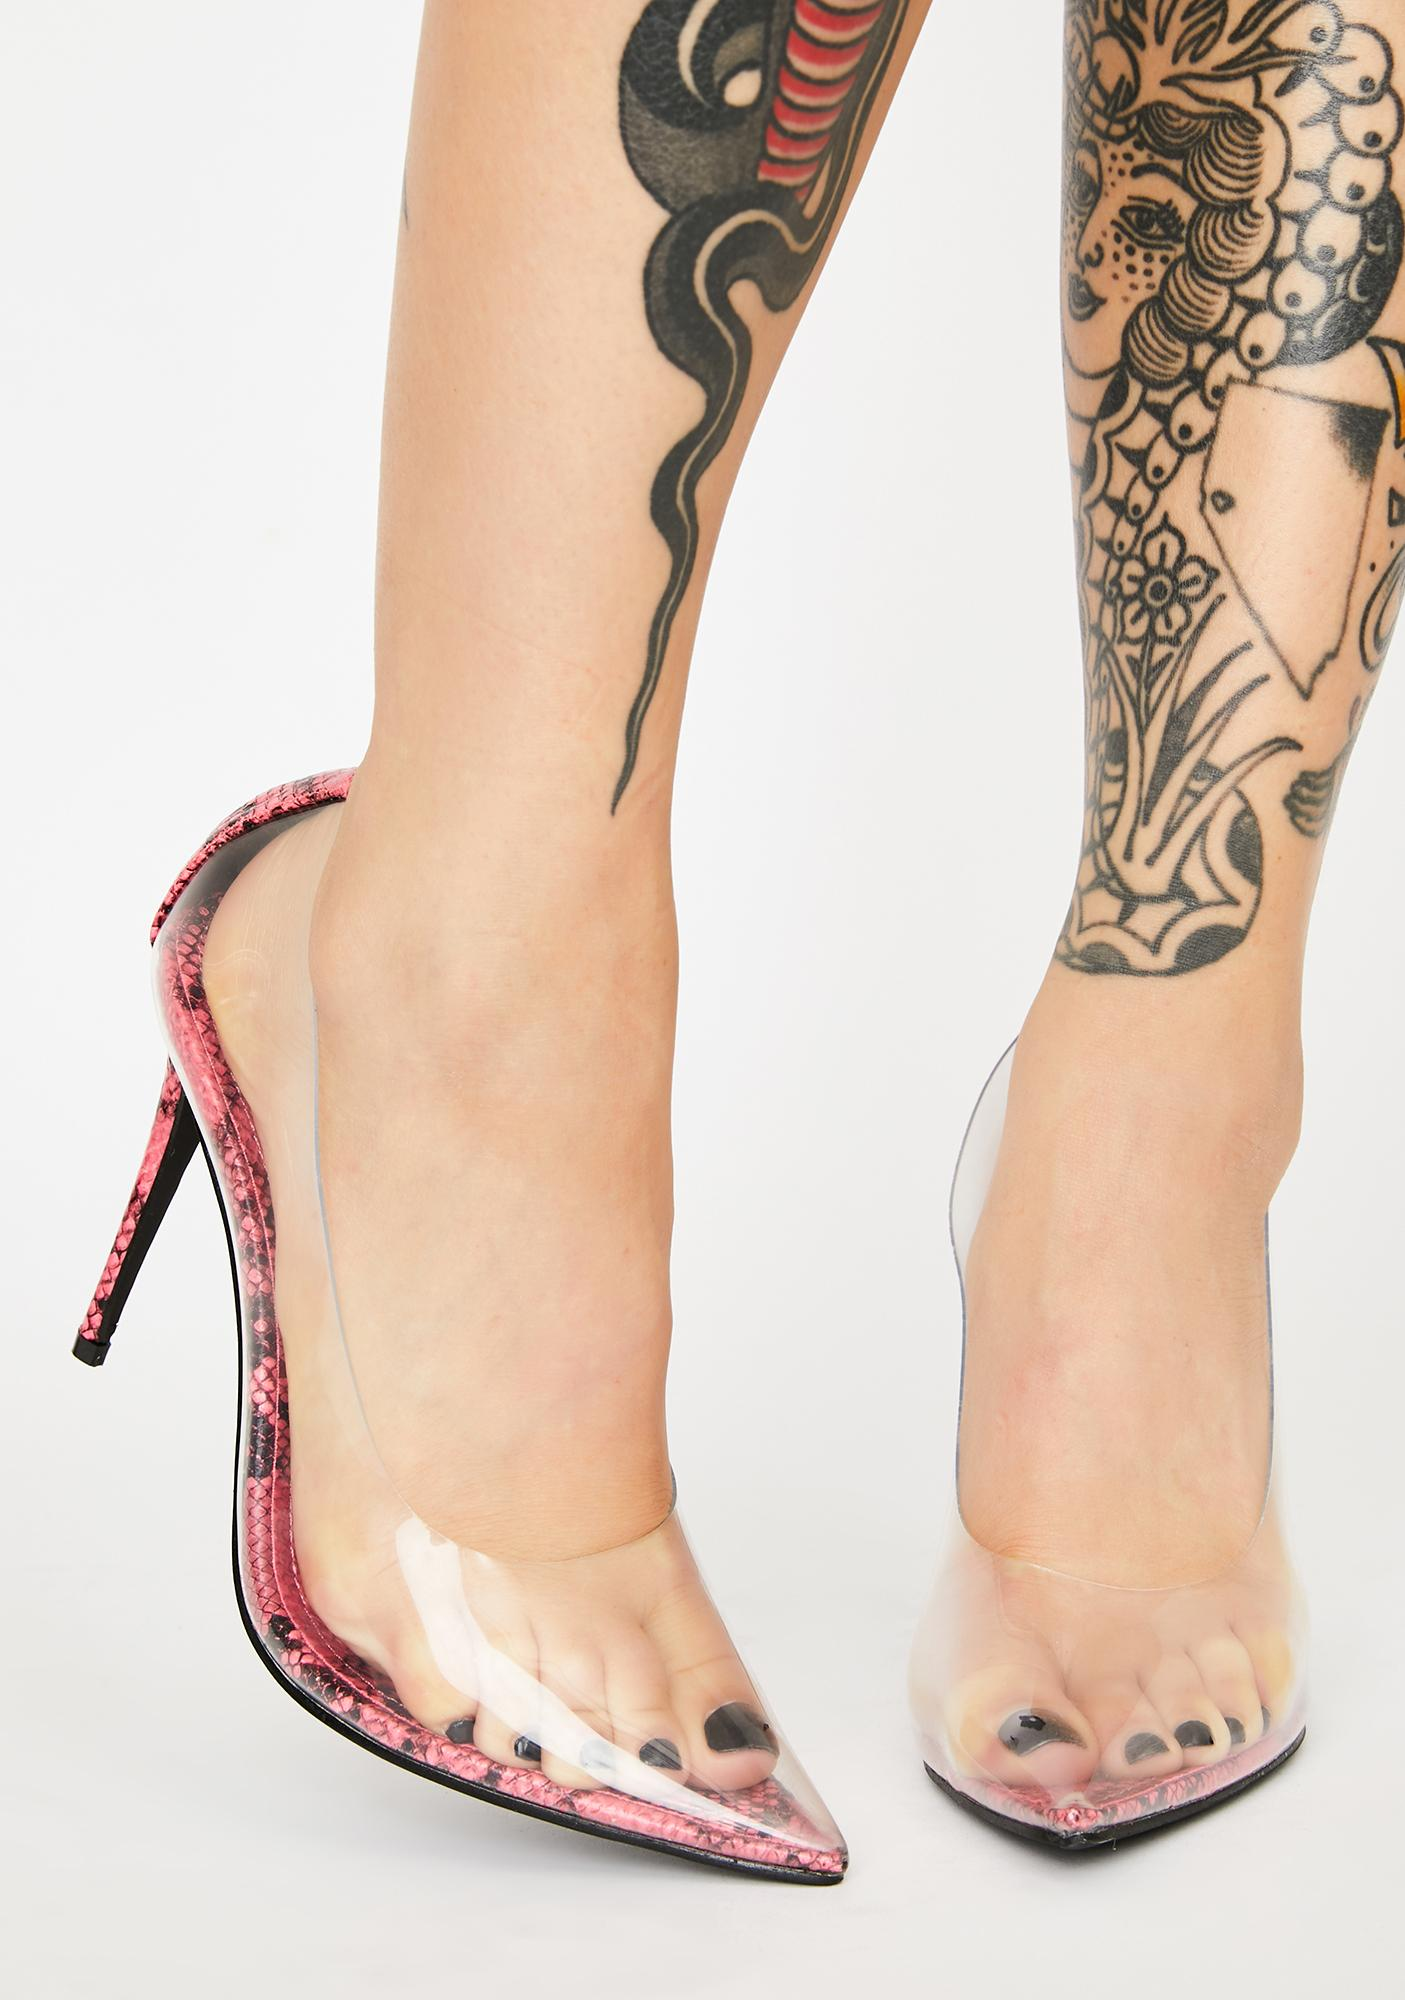 Clearly Feisty Snakeskin Pumps